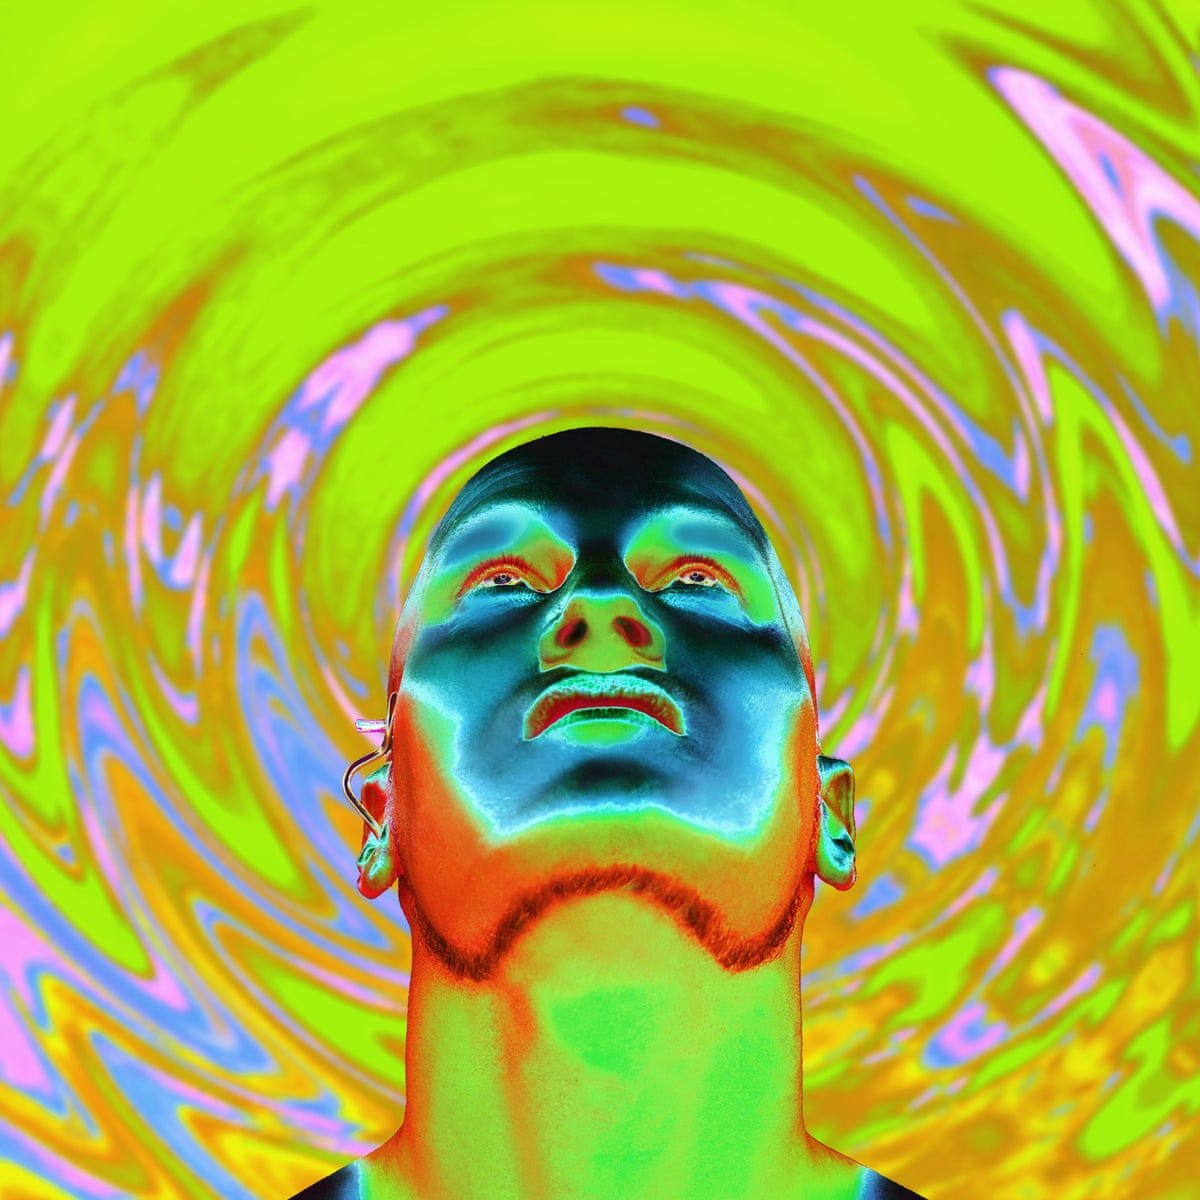 LSD study reveals why acid trips last so long | Drugs | The Guardian